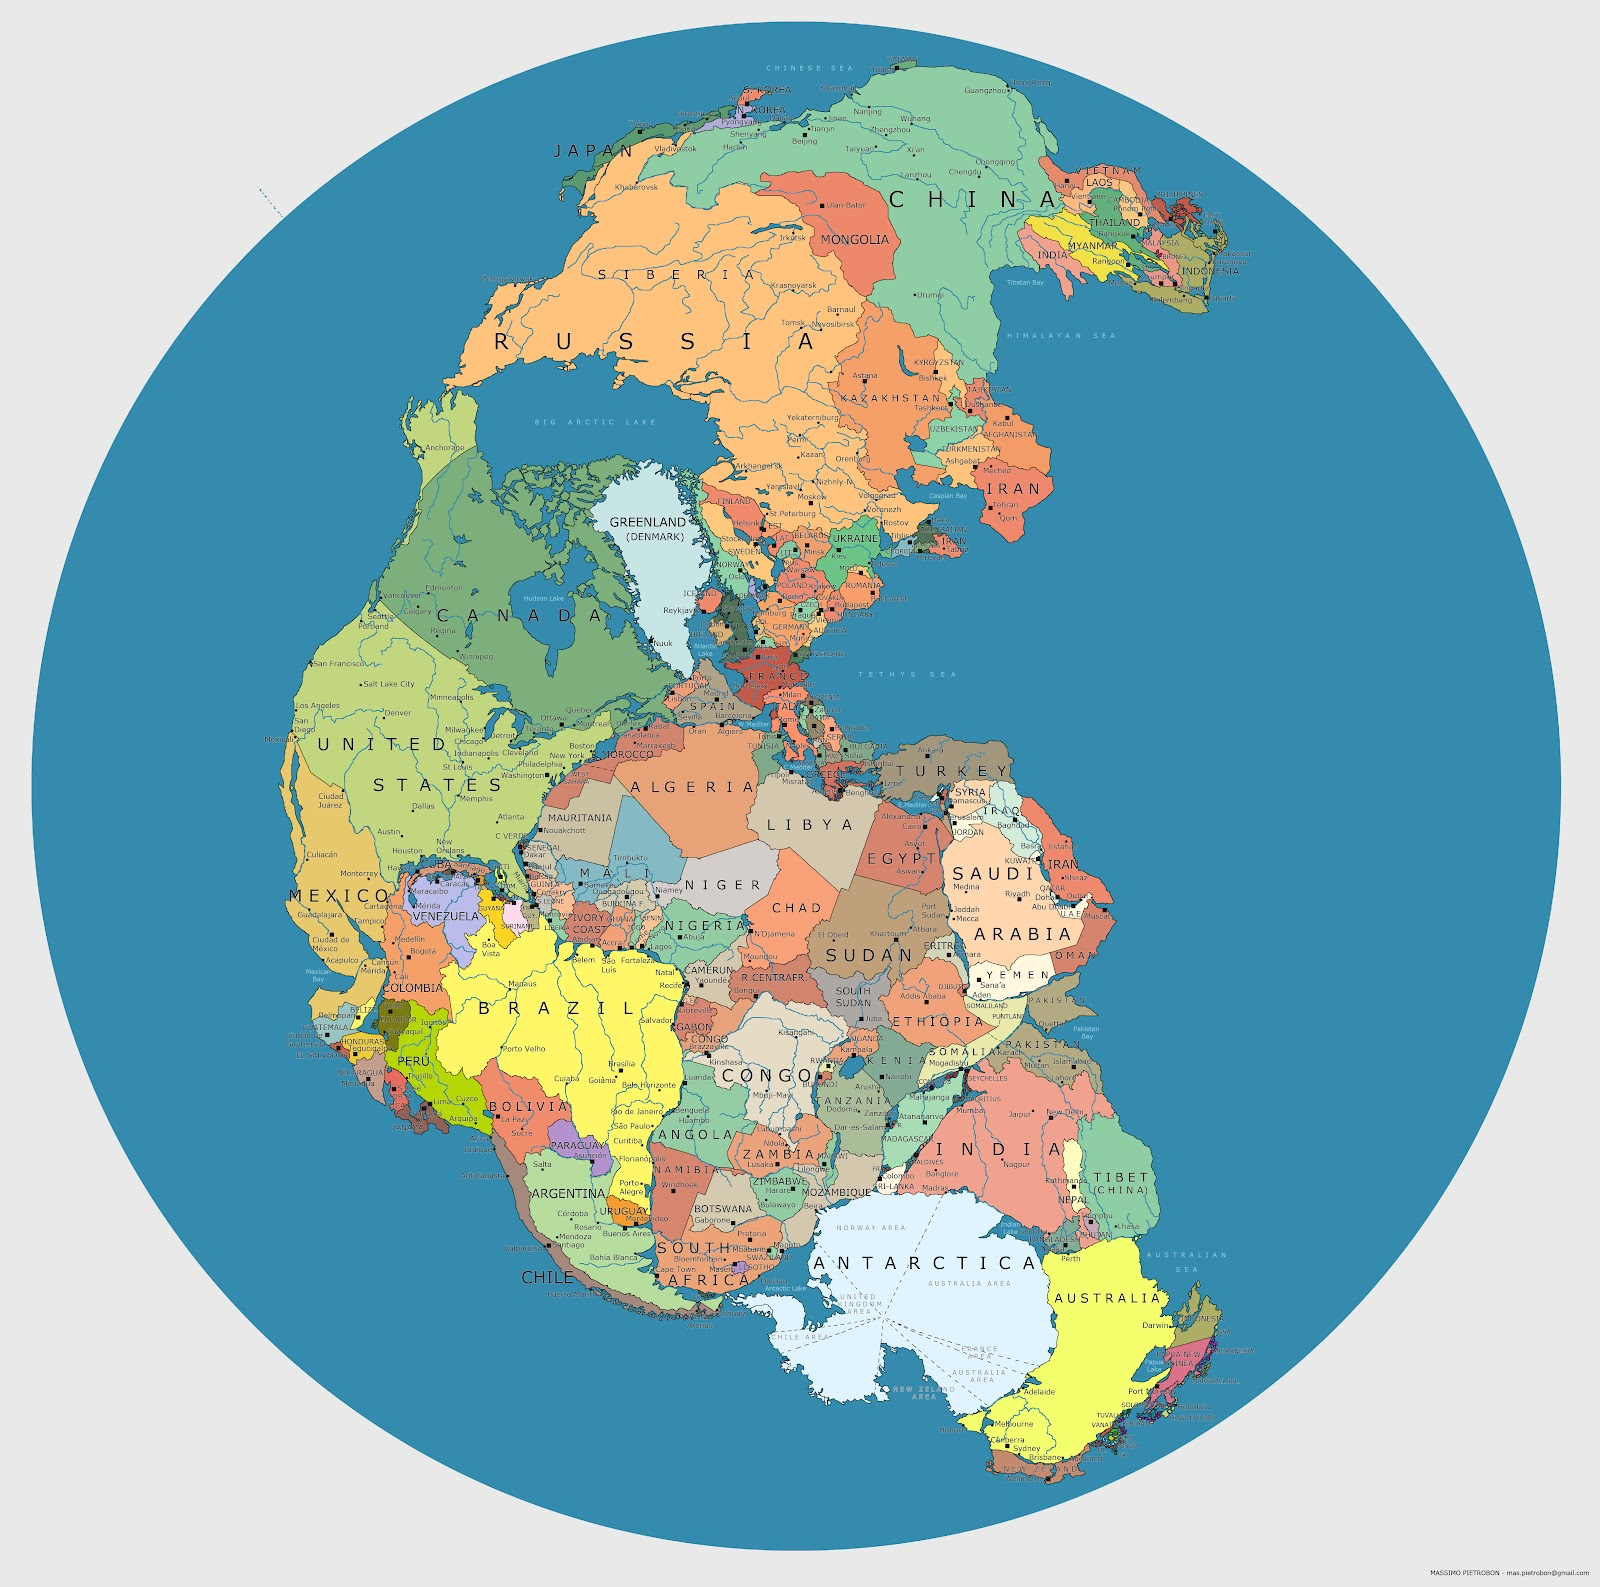 Map Showing Where Today's Countries Would Be Located on Pangea